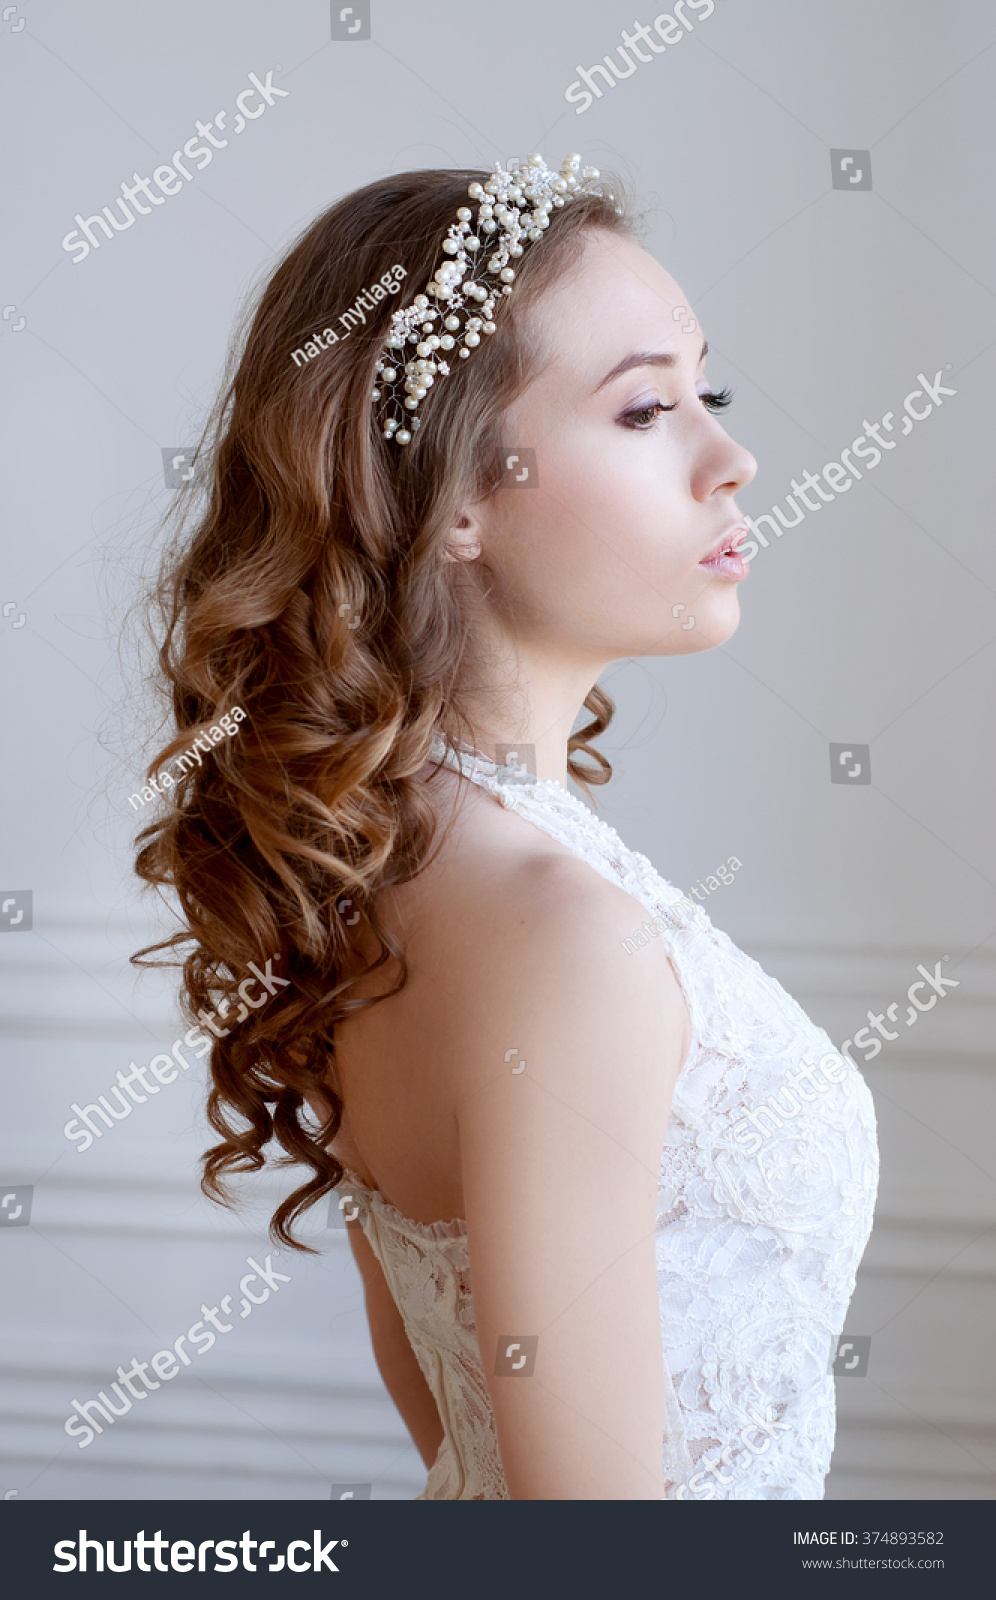 bridal hairstyle and makeup. young woman with long curly brown